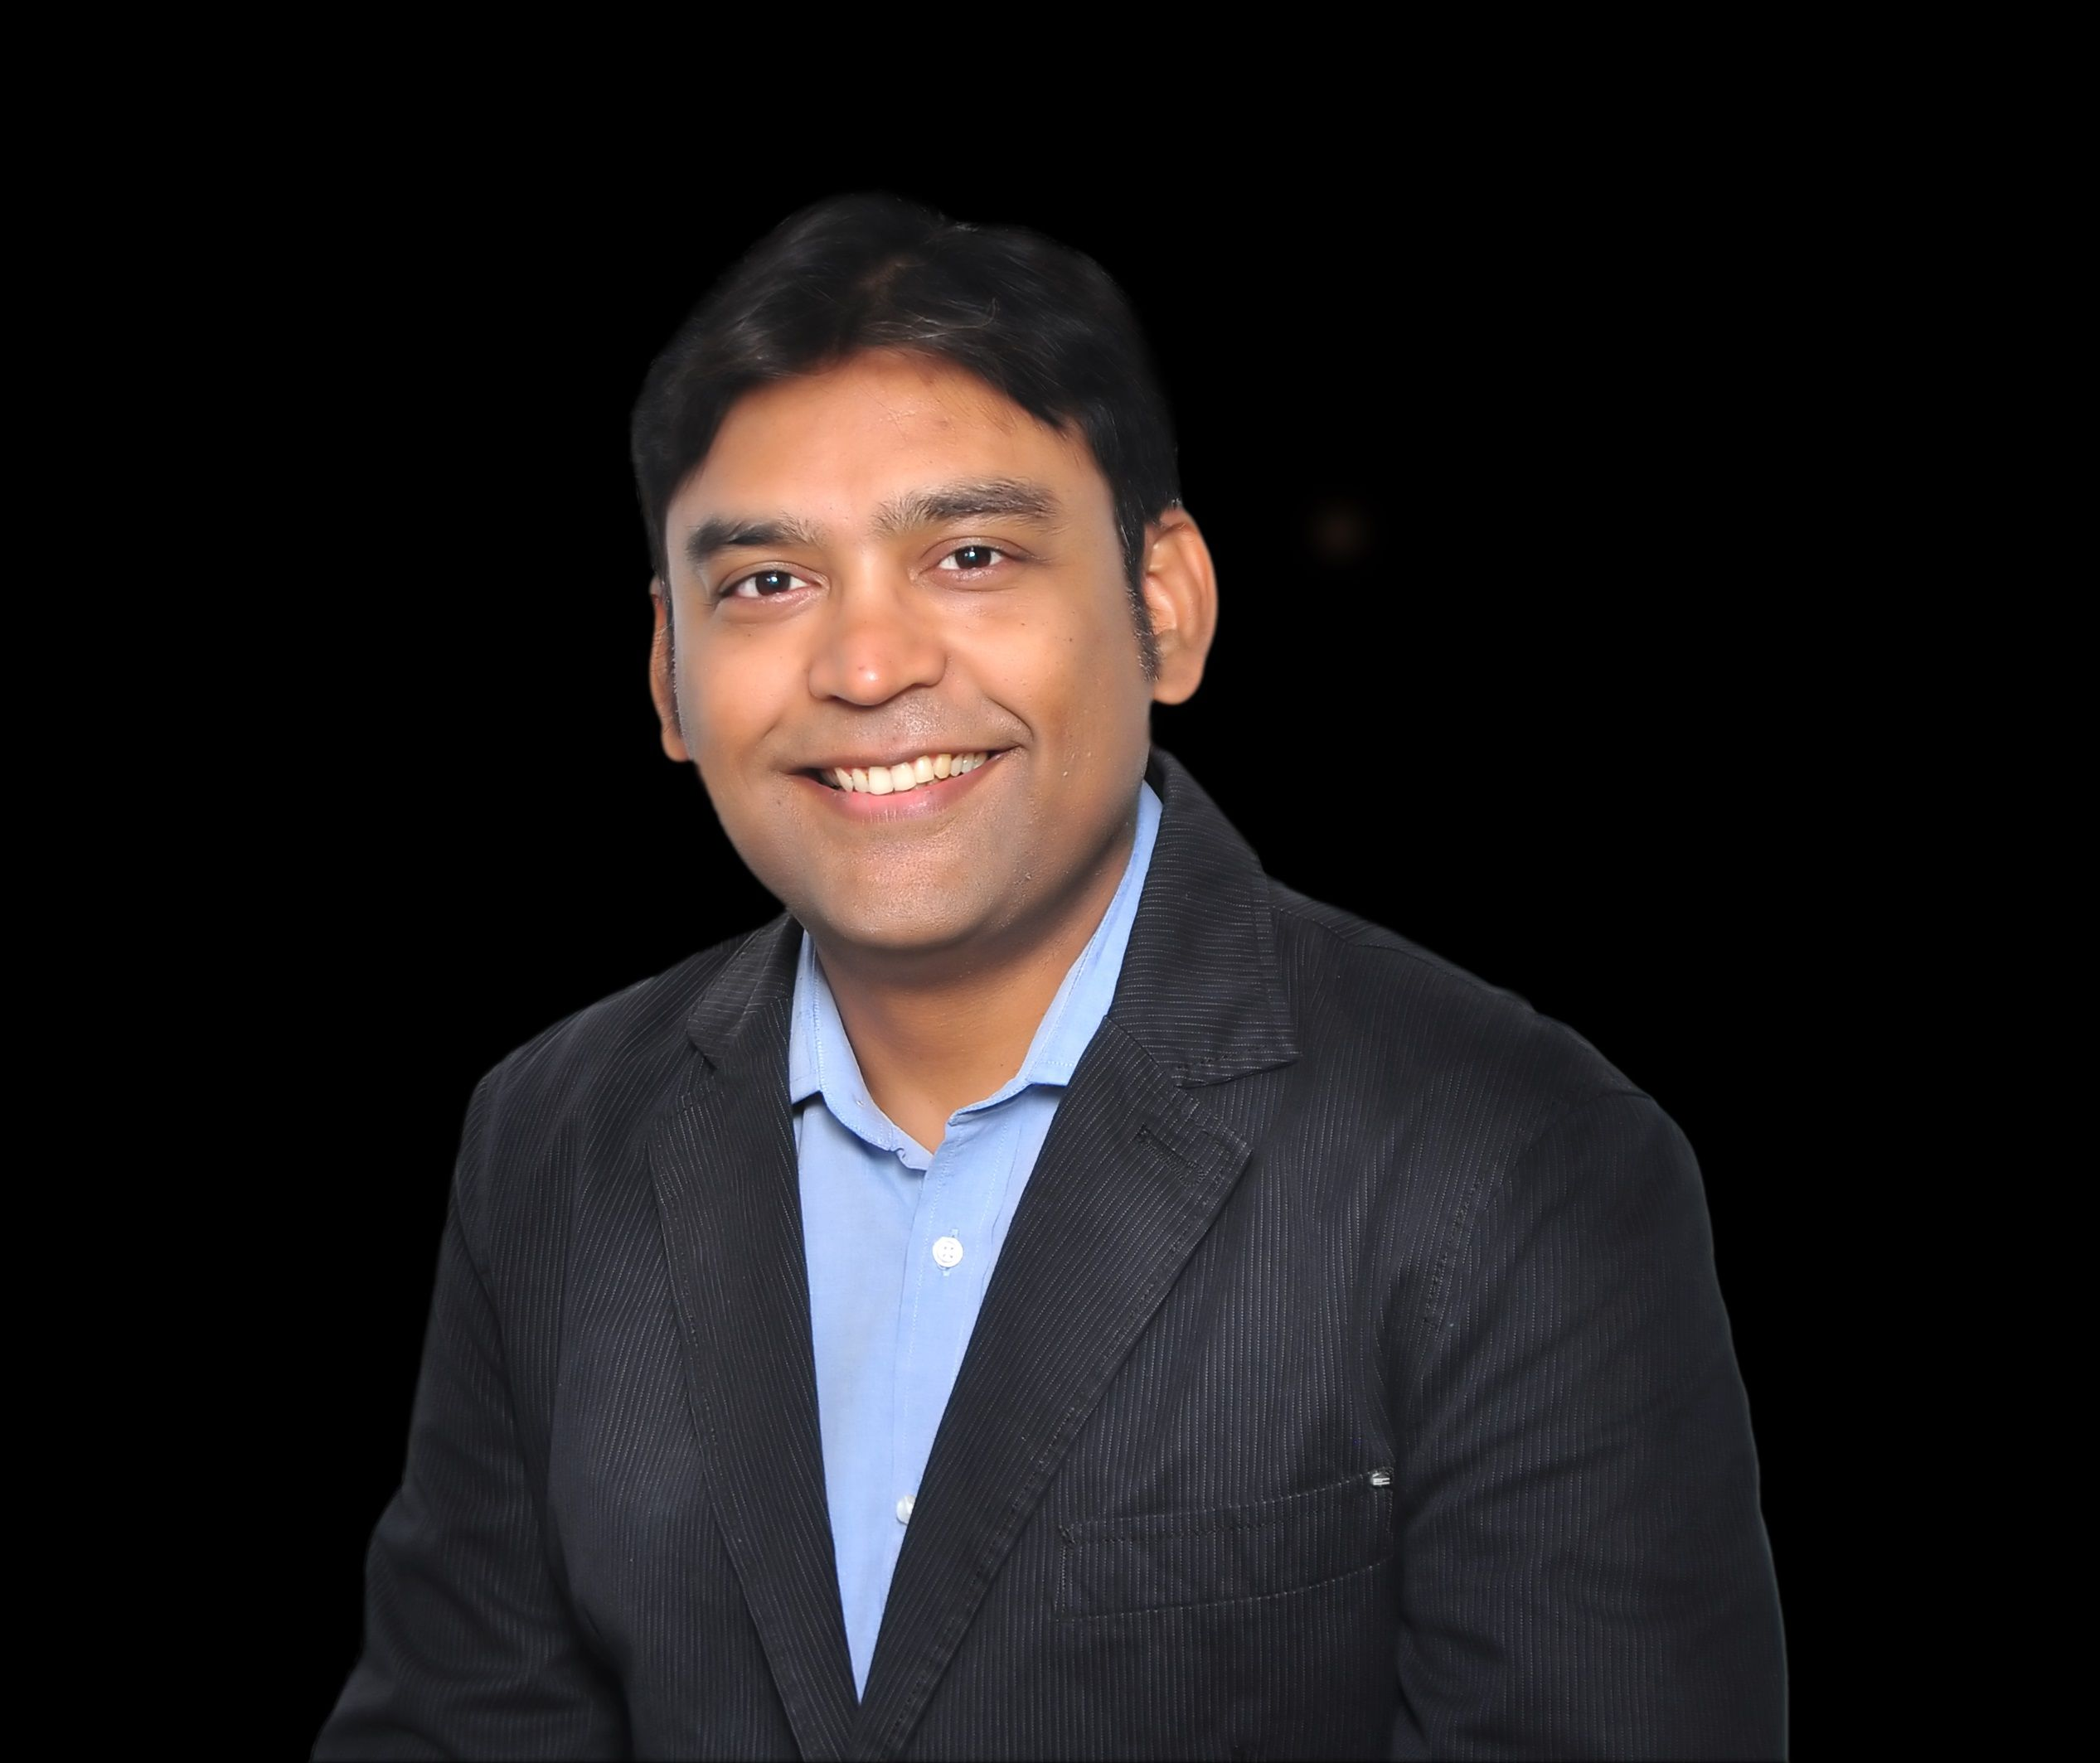 A #LifeAtVeritas Interview with Varun Verma championing Backup Exec